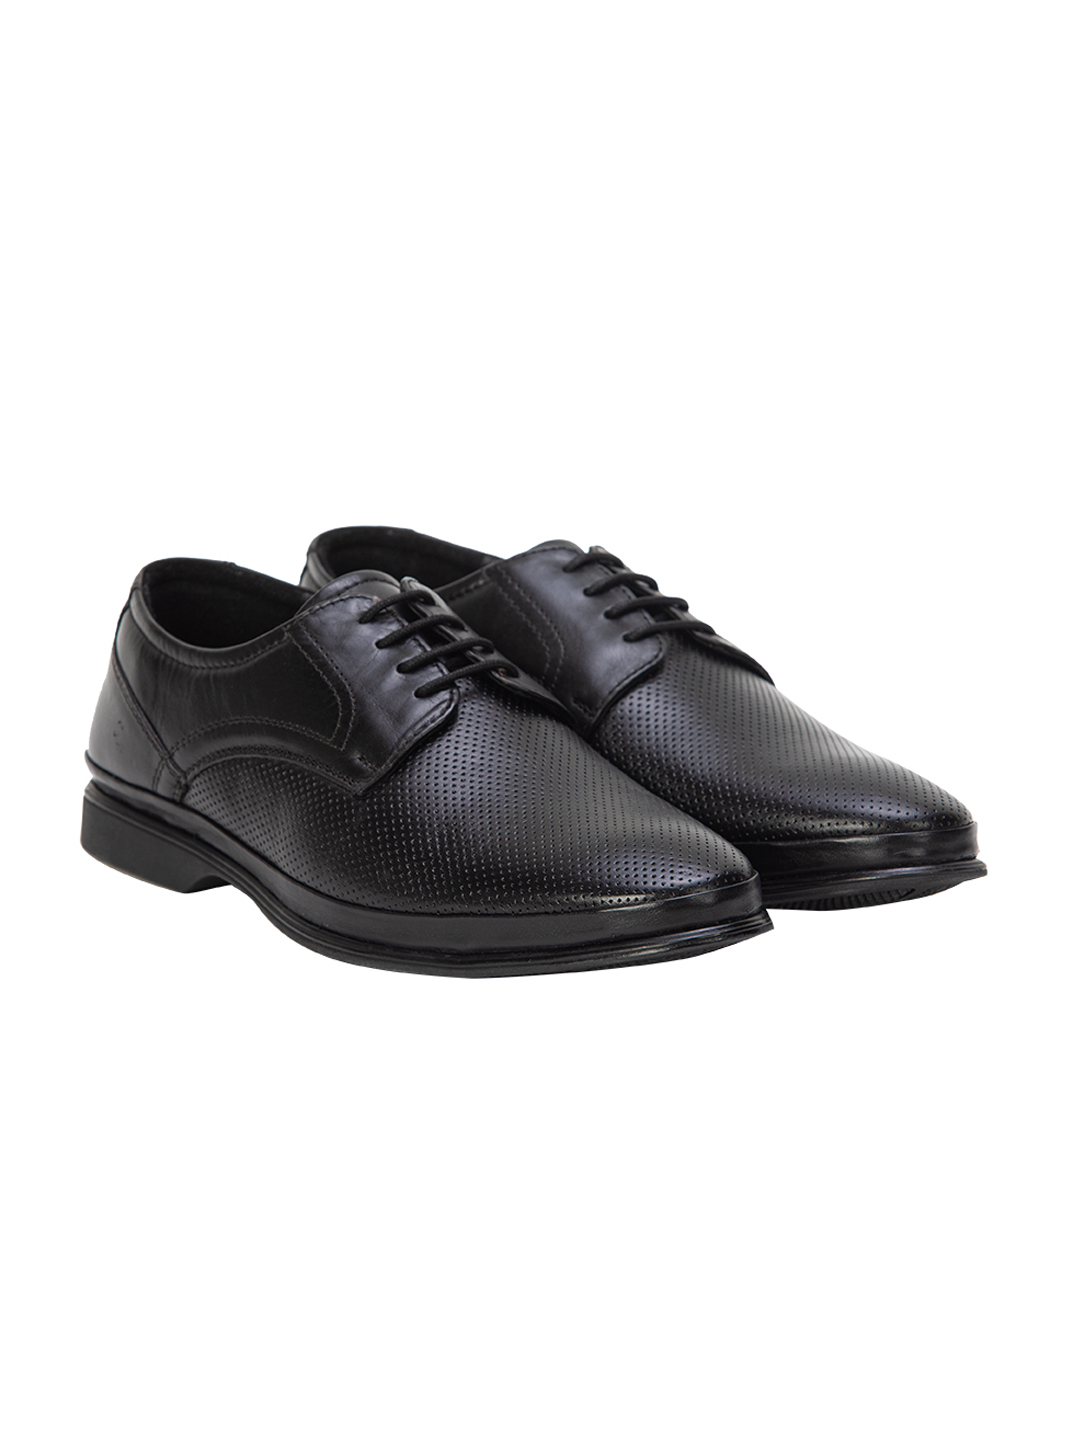 Buy Von Wellx Germany Comfort Black Coen Shoes Online in Madhya Pradesh